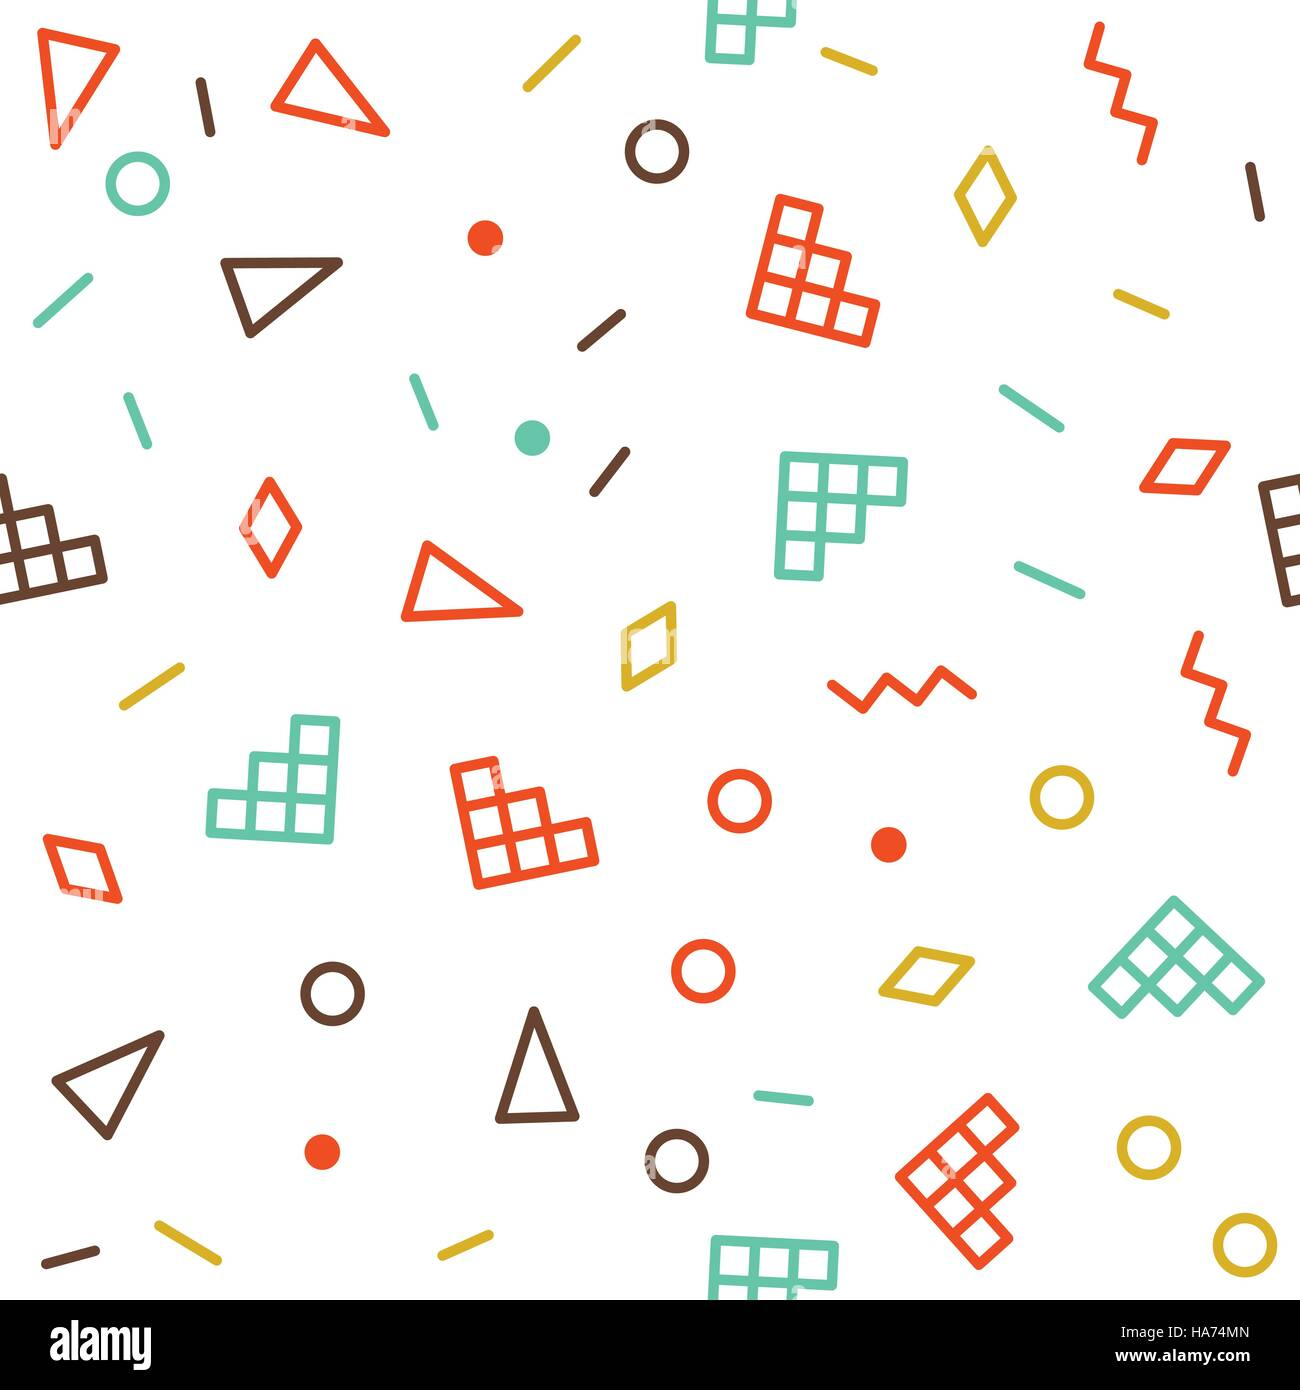 Vector Geometric Seamless Pattern - Stock Vector